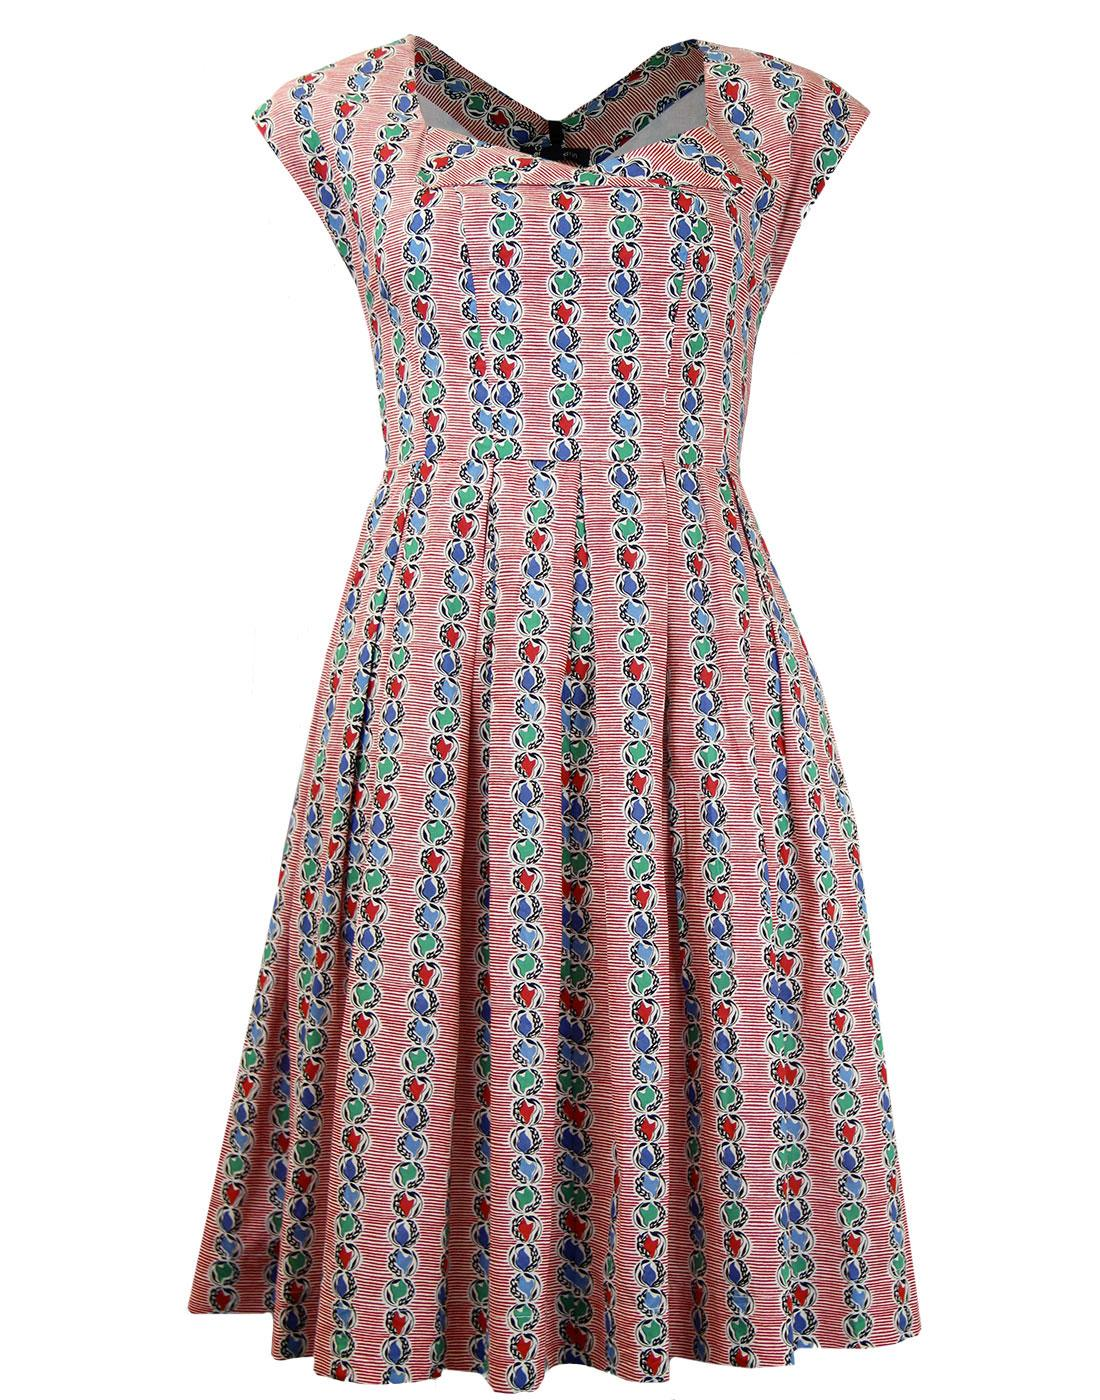 Hazel EMILY AND FIN Retro 40s Marble Summer Dress